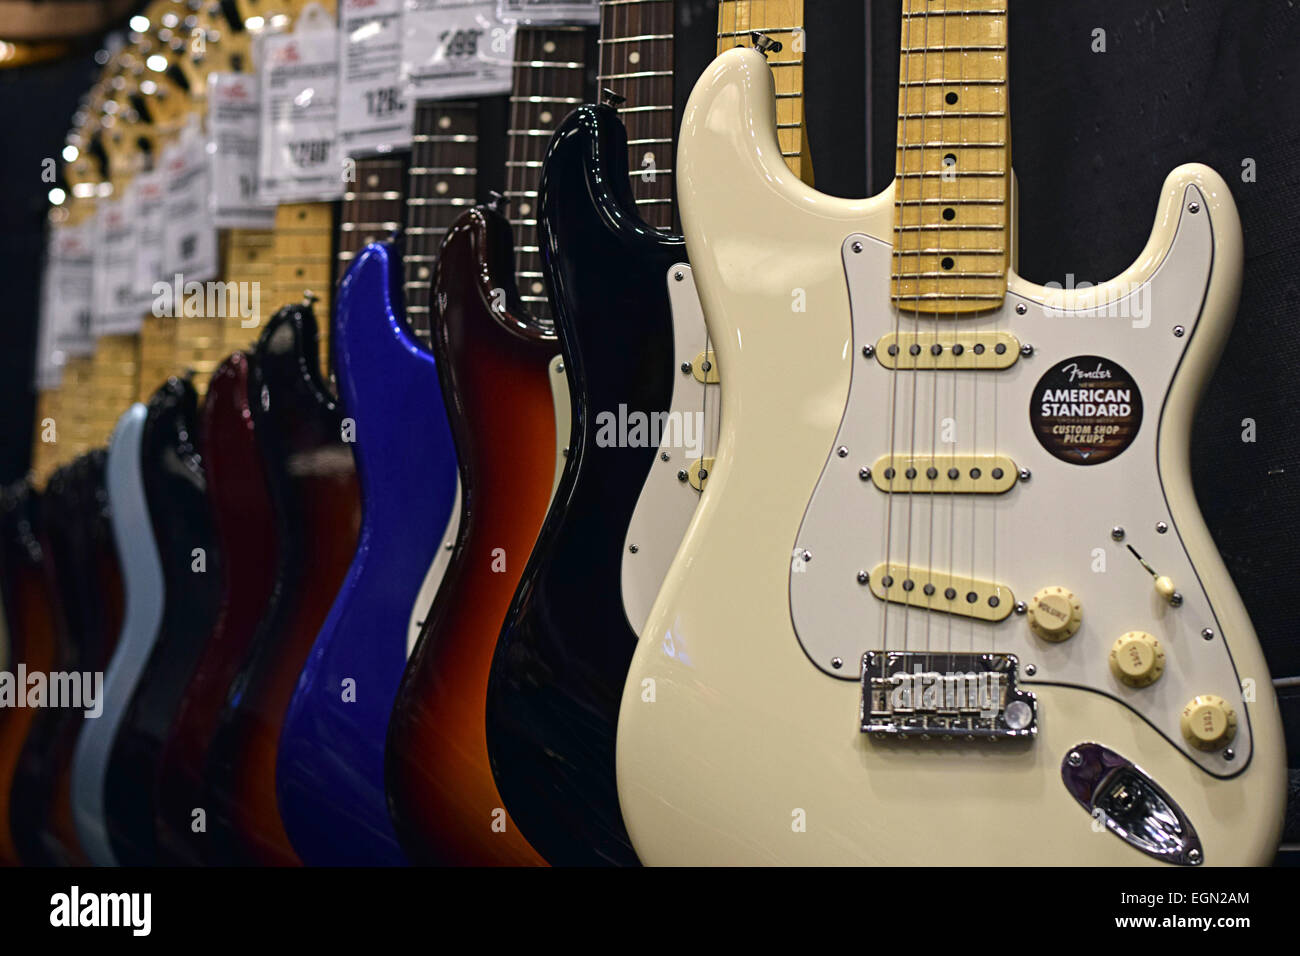 Fender Electric Guitars For Sale At The Guitar Center On West 14th